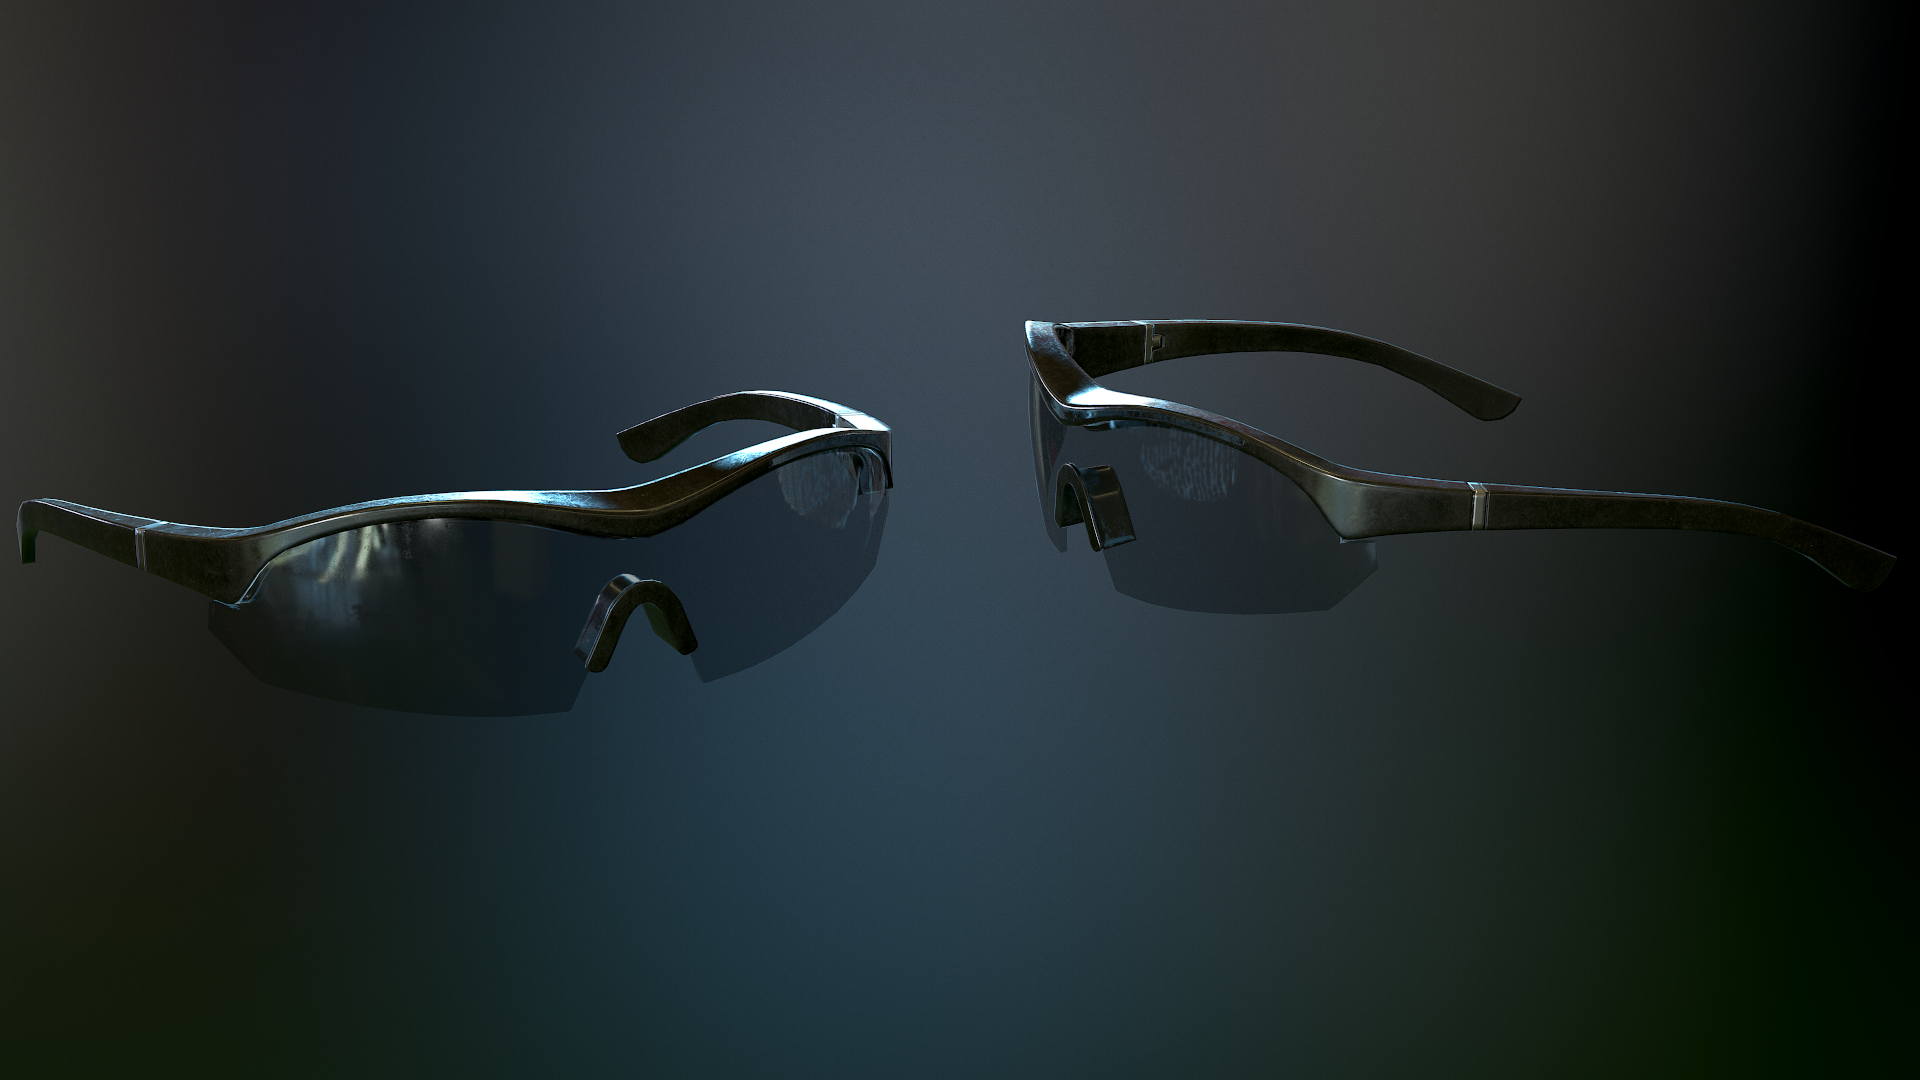 Copy of New model for the glasses.